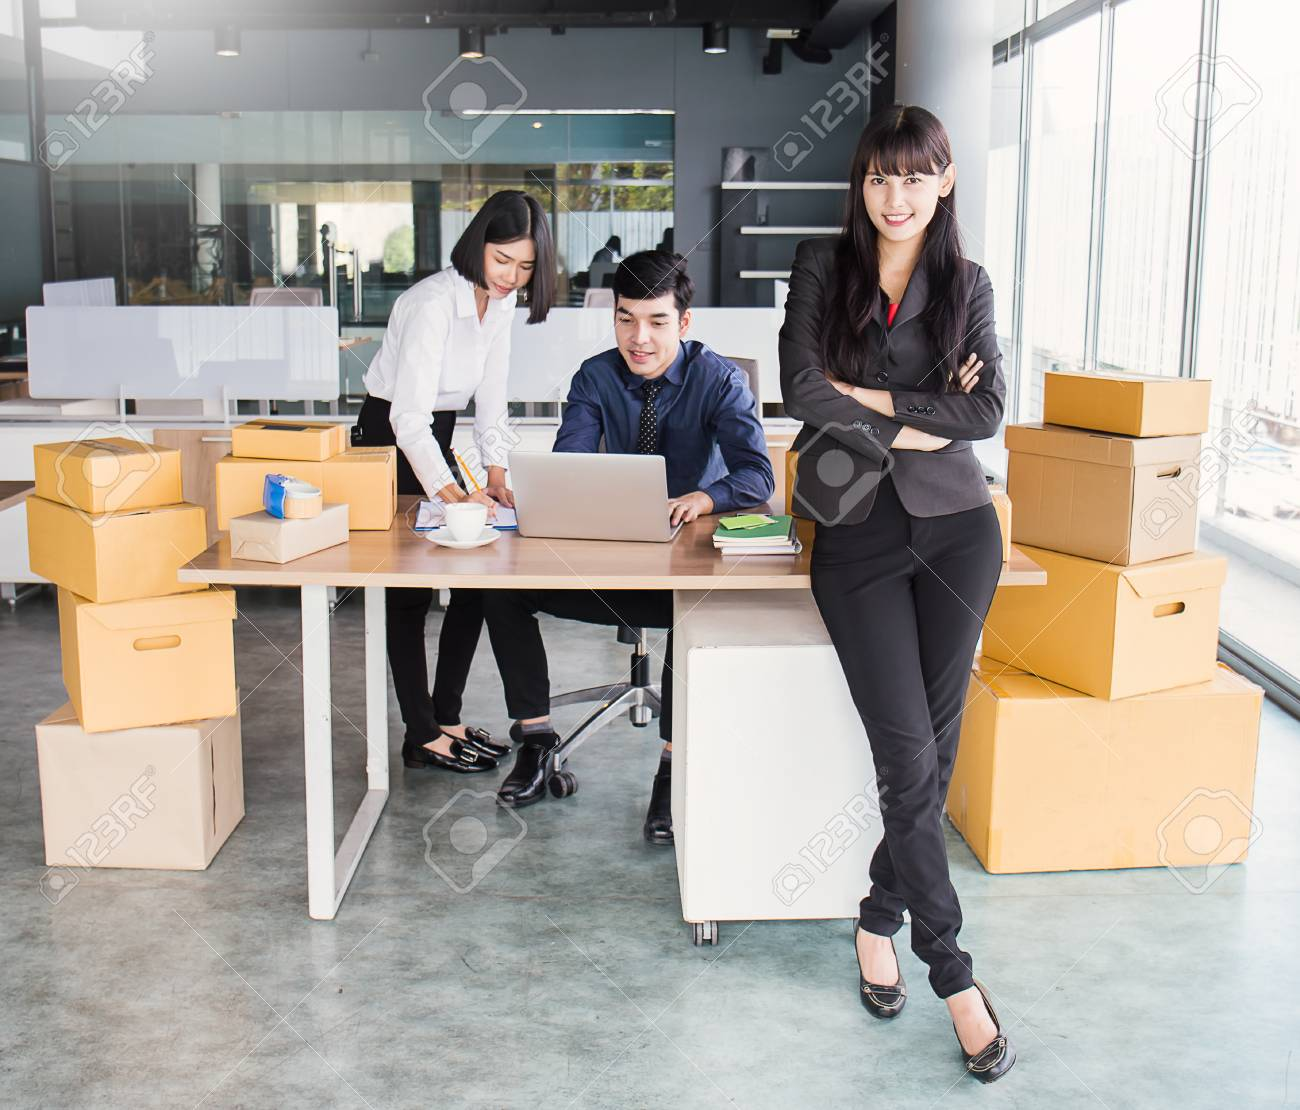 Start up small business entrepreneur SME or freelance woman team working with box, Young Asian small business owner at office, online marketing packaging box delivery, SME concept - 90527251